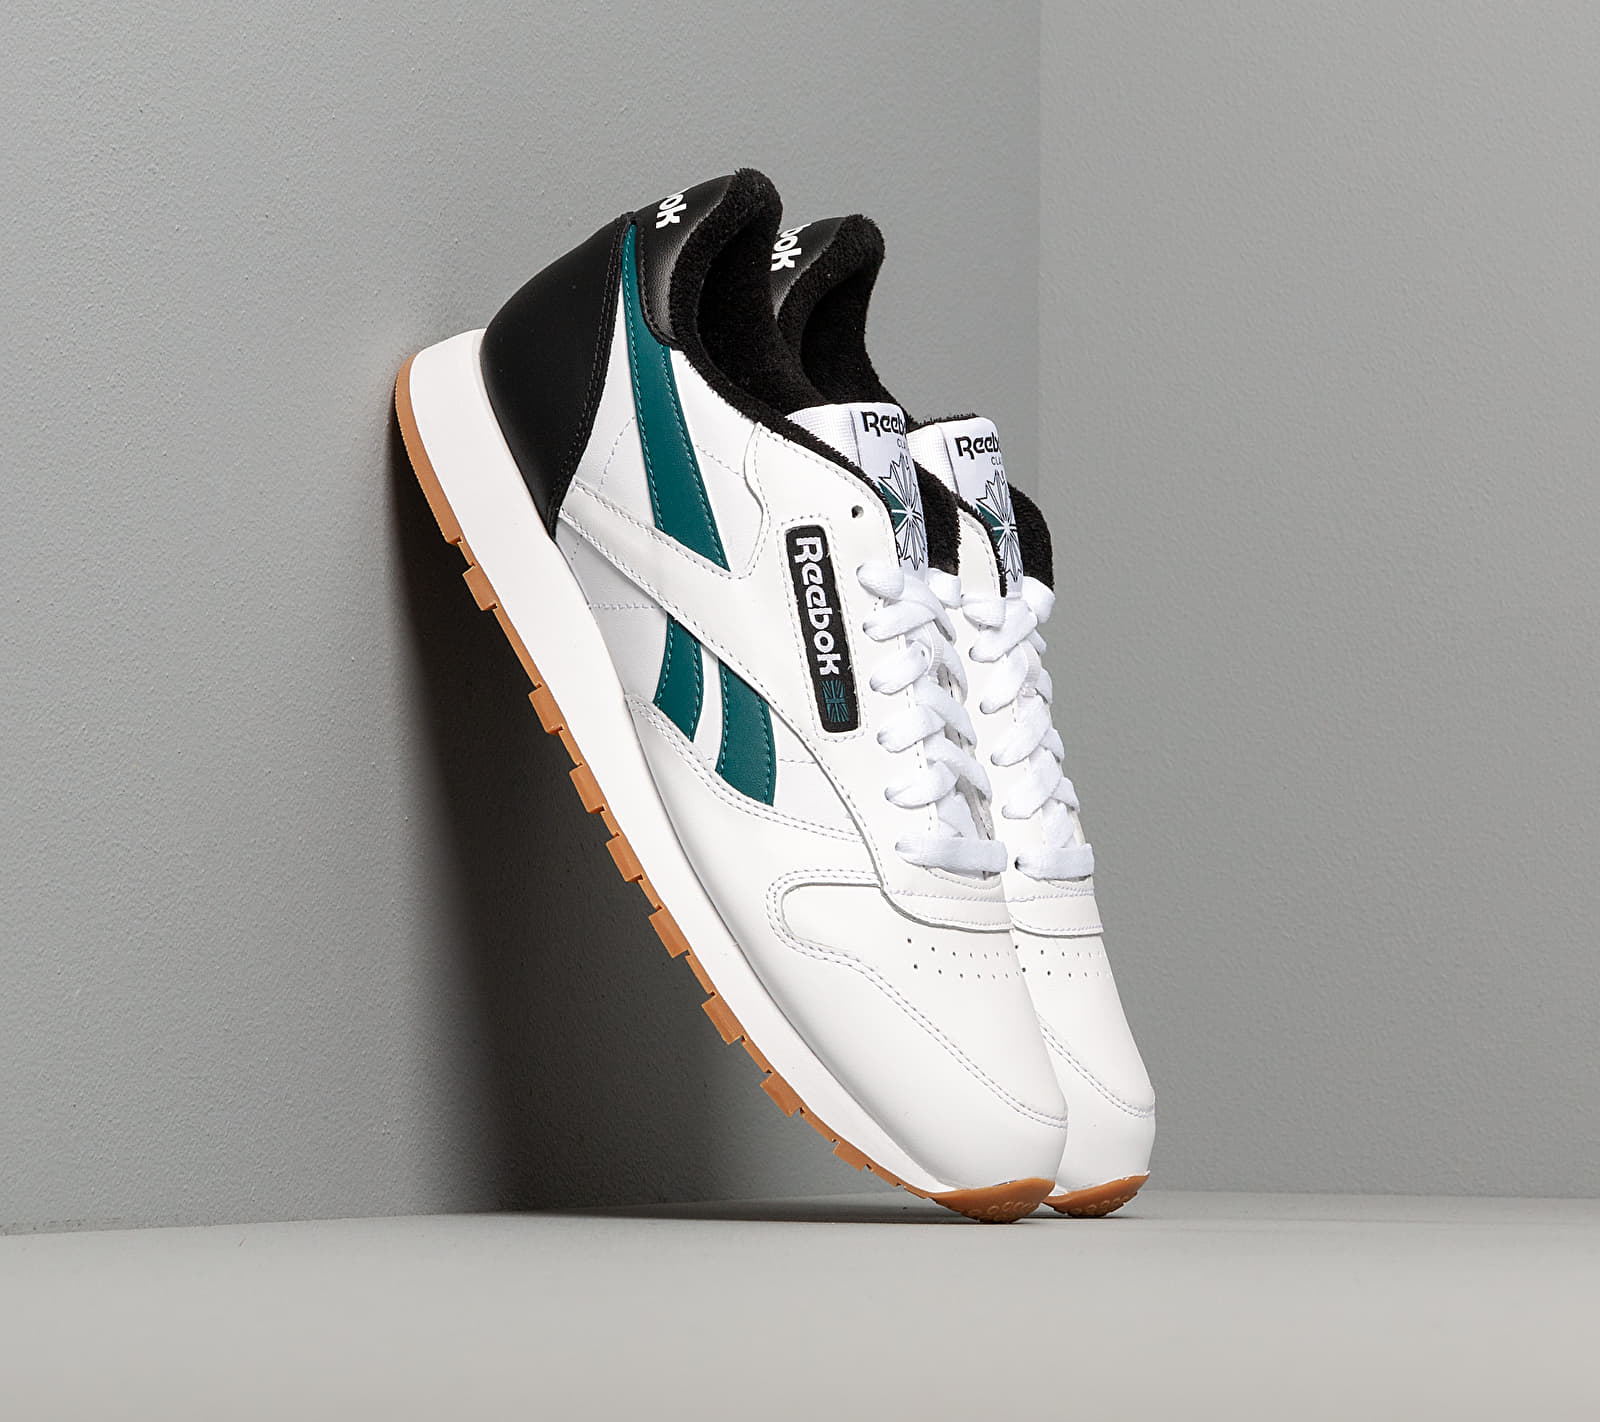 Reebok Classic Leather MU White/ Black/ Heritage Teal EUR 44.5